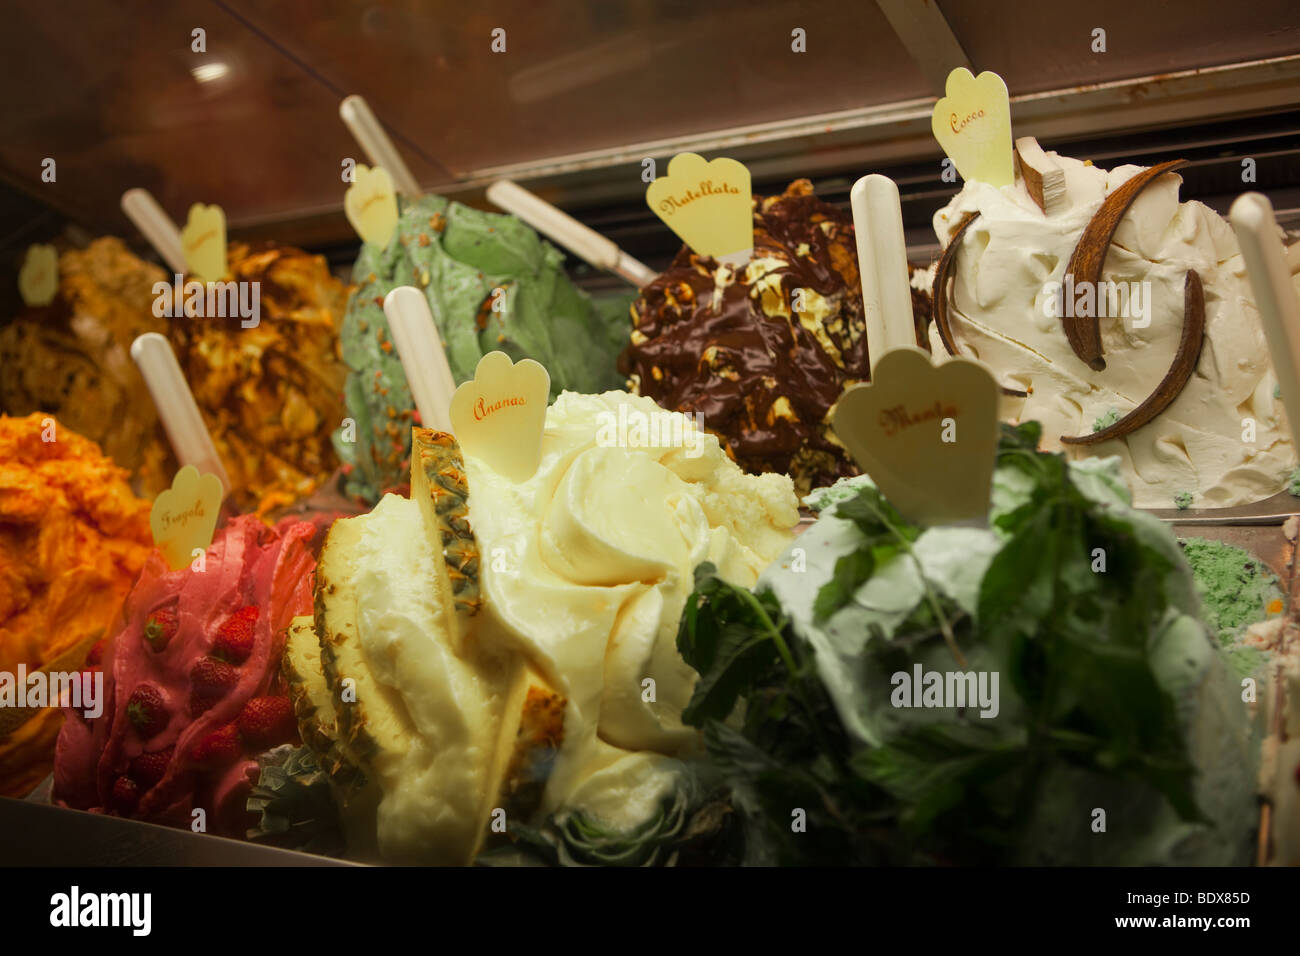 Italian Gelataria ice cream shop (multiple colourful assorted flavours) in window display, Florence, Tuscany, Italy, - Stock Image